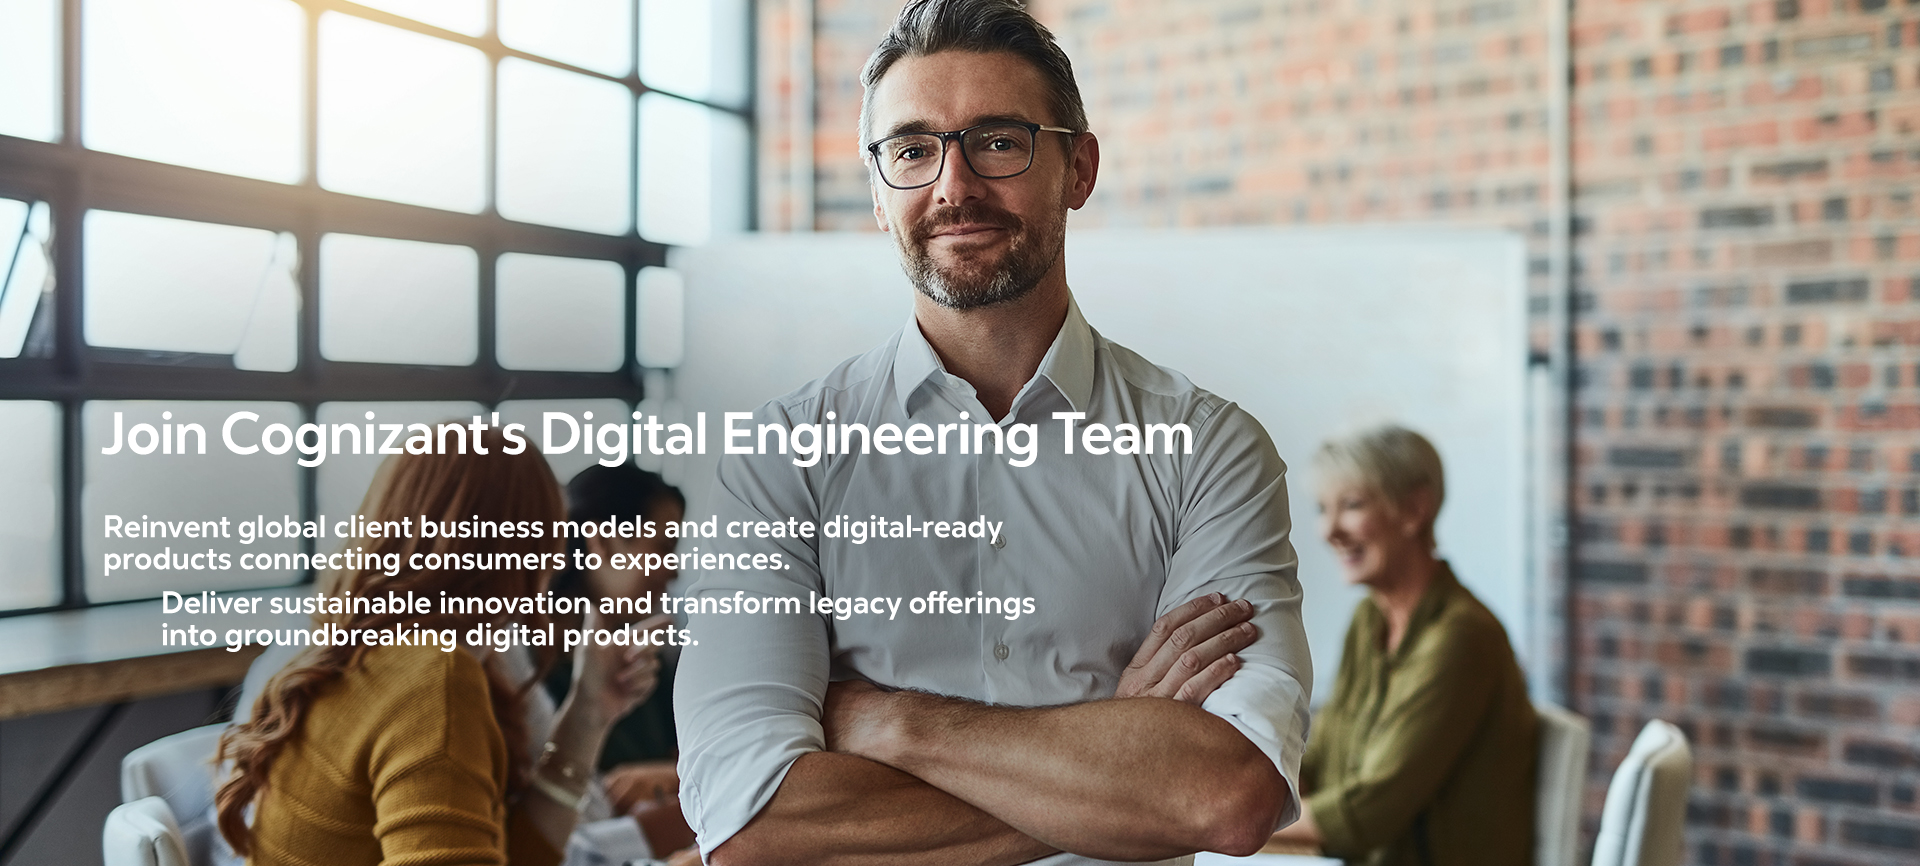 Our digital team works behind the scenes to make your project shine